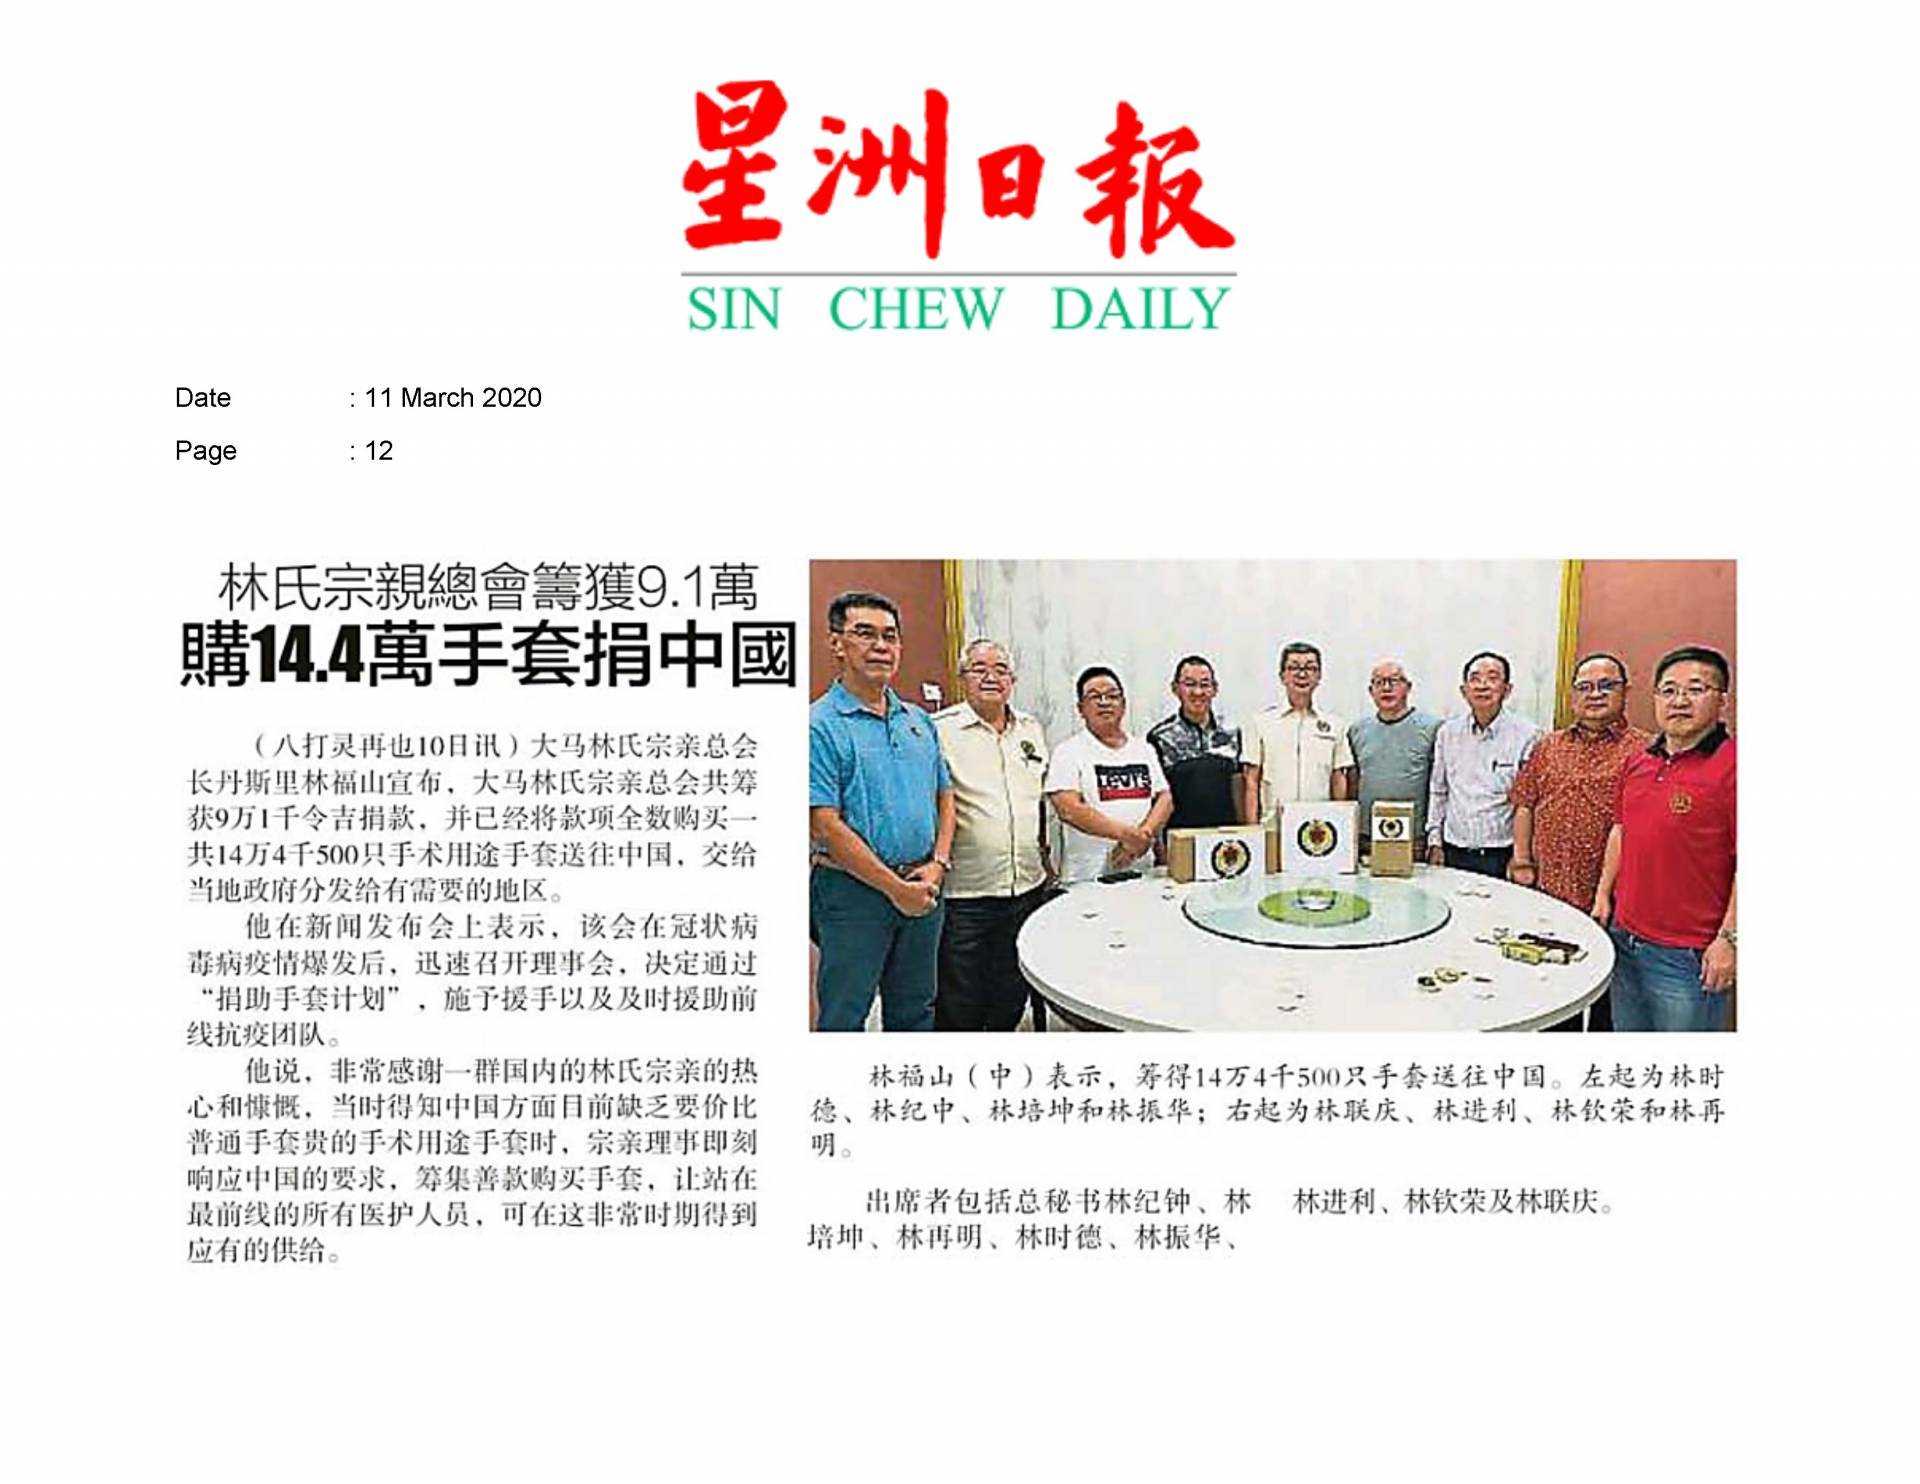 2020.03.11 Sin Chew - The Federation of Malaysia Lim Associations raises RM91,000 funds to purchase 144,000 gloves and donate them to China